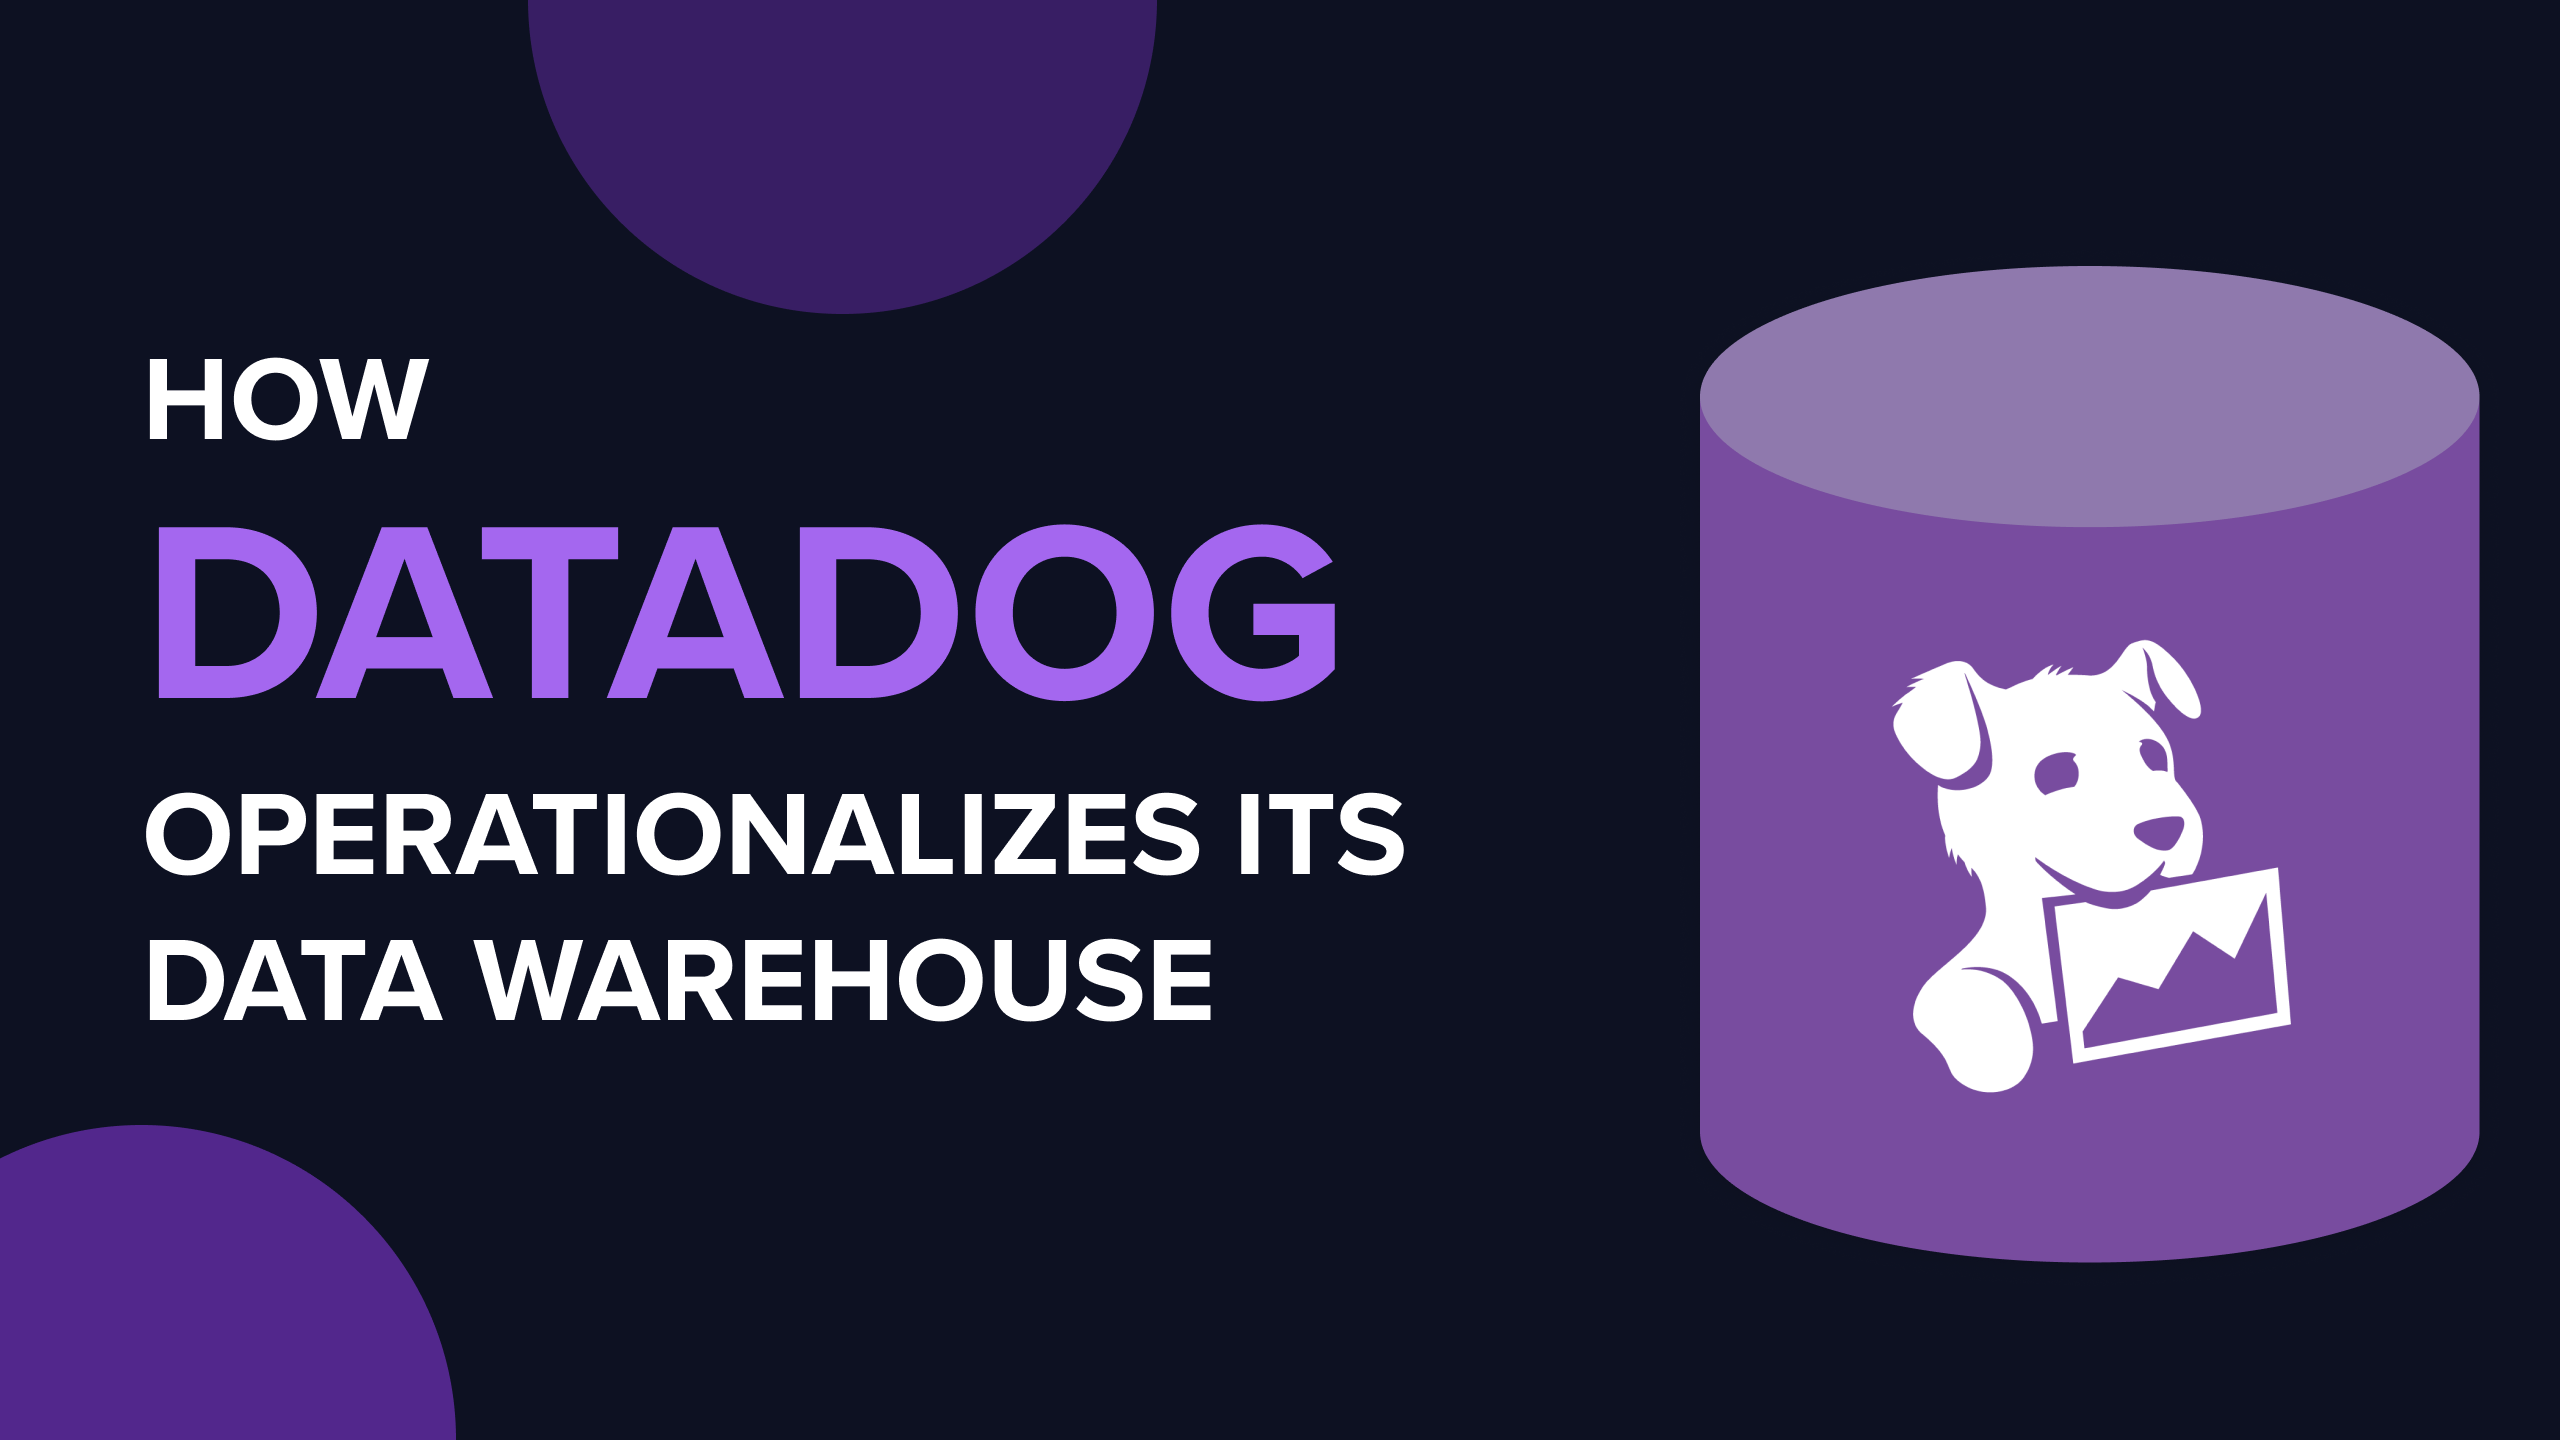 How Datadog operationalizes their data warehouse to supercharge their business teams